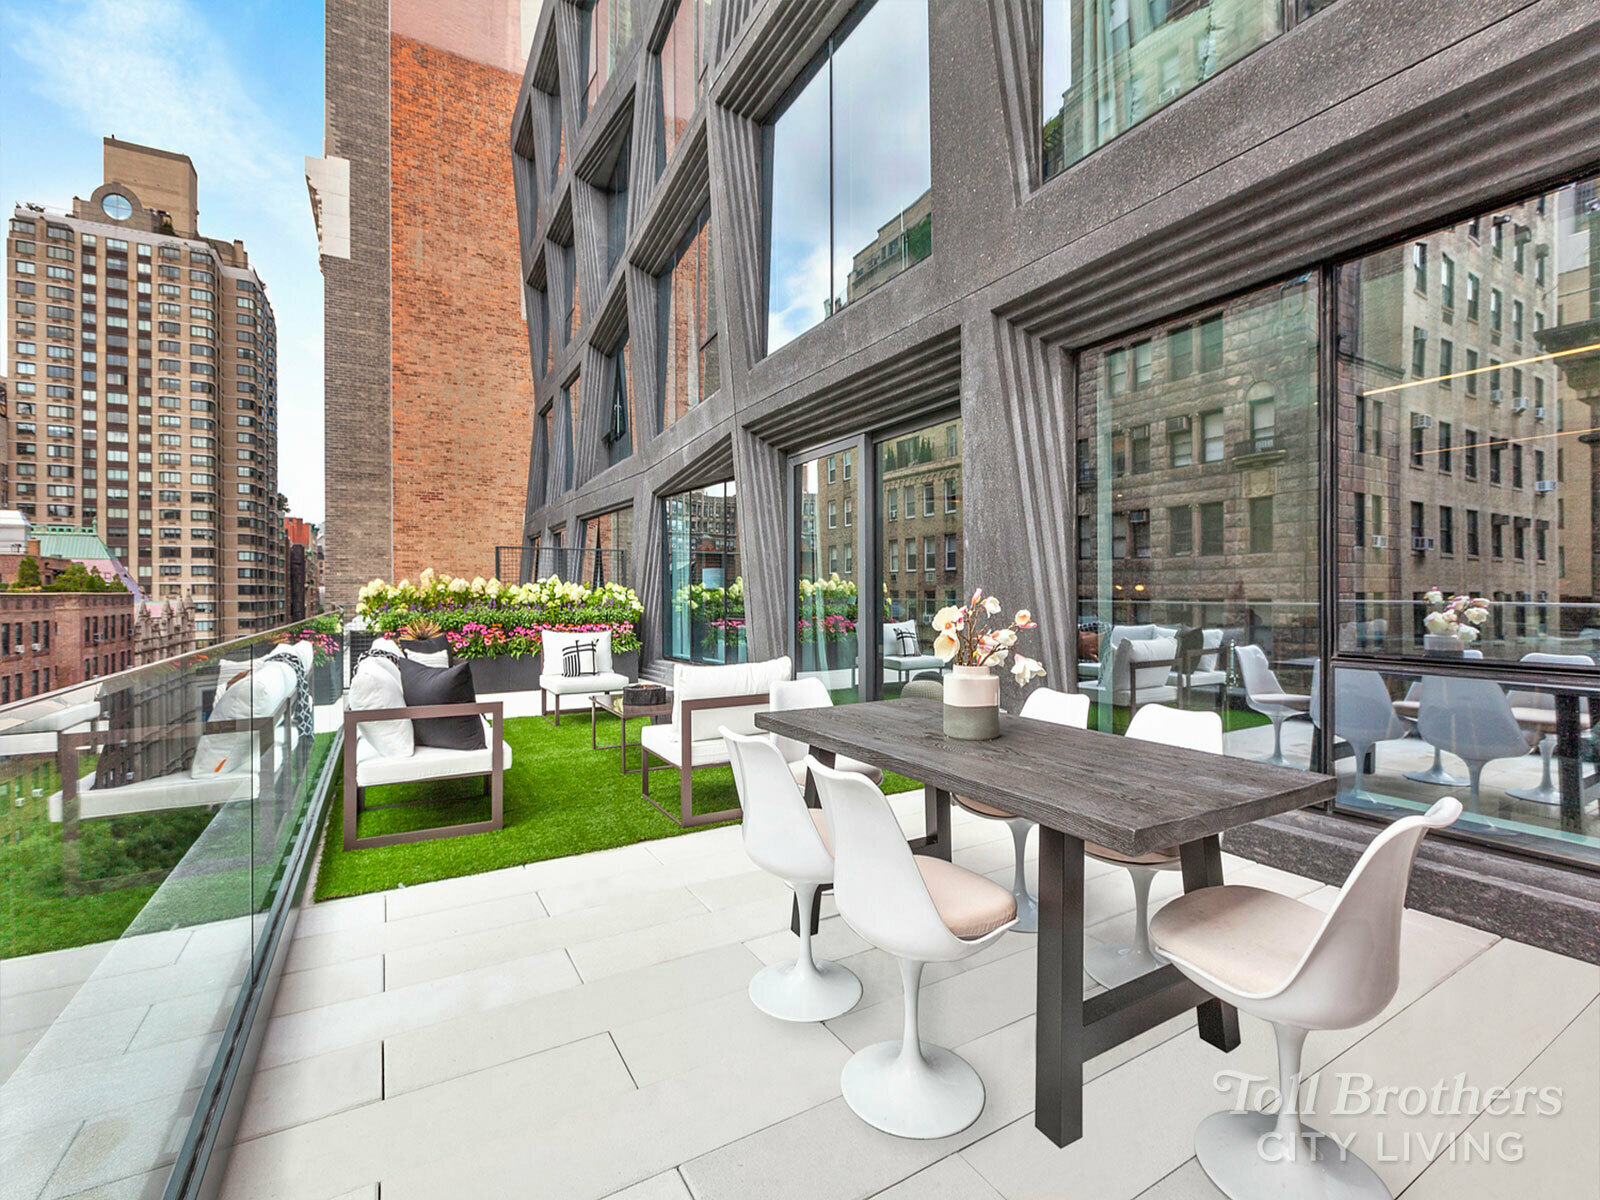 NATIONAL SALES EVENT (9/18 – 10/3): ALL CLOSING COSTS PAID BY SPONSOR + $25K OFF PARKING FOR LIMITED TIME! IMMEDIATE OCCUPANCY - SCHEDULE YOUR IN-PERSON OR VIRTUAL TOUR TODAY!   S901 is a one of a kind 4BR/4.5BA 2,553SF floor thru duplex with two terraces and a balcony (nearly 1,123sf of private outdoor space). With only two Residences per floor in the South tower, S902 offers privacy and exclusivity of a boutique building.  The Living/Dining Room with a large terrace and an open kitchen is facing South over a tree-lined East 22nd street. Guest bedrooms is tucked in the back with its own terrace overlooking a private courtyard. The primary bedroom suite with a balcony and two en-suite guest bedrooms is on the upper level accessible with it's own entrance. The home features wide plank, white oak floors, Gaggenau appliances, polished quartz counter tops, and acid-etched, back-painted glass cabinetry with custom millwork interiors. The stunning primary bathroom clad with Calacatta Paonazzo marble countertops, tub decks, and accent walls is outfitted with white oak cabinetry, polished chrome Kallista fixtures and acid-etched glass shower doors. All three bathrooms have radiant heated floors.  Residents enjoy a carefully curated selection of amenities that includes an indoor pool, a landscaped courtyard, an indoor/outdoor residents' lounge, a rooftop terrace with fire pit and grill, a private dining room and catering kitchen, a fitness center, a screening room, and a children's playroom. The building also offers an automated indoor parking system, bike storage, private storage, a 24/7 attended lobby, and full concierge services.  *Offer, if any, is valid for new buyers who sign an agreement of sale at full asking price between 9/18/21 and 10/3/21. Offers, incentives, and seller contributions, if any, vary by community and are subject to certain terms, conditions, and restrictions. Closing cost incentive is applicable to all non-recurring costs up to 5.5% of the purchase 